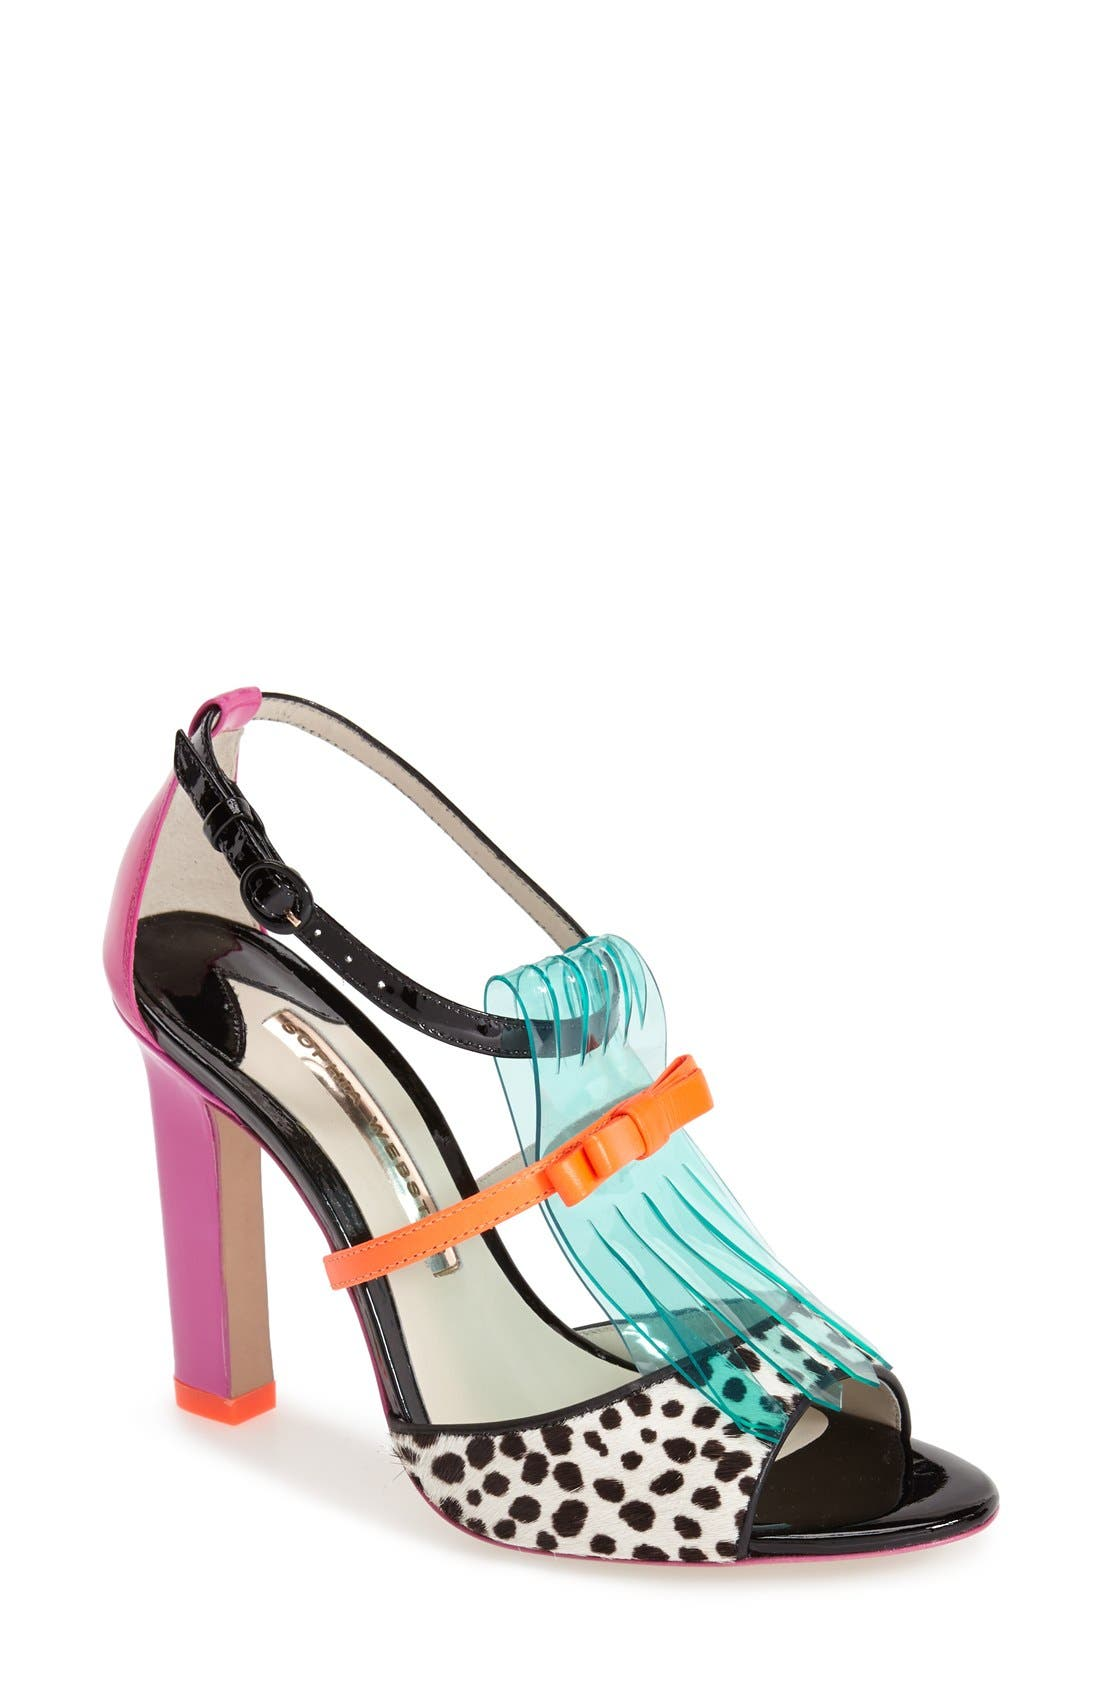 Alternate Image 1 Selected - Sophia Webster 'Verity Polka' Sandal (Women)